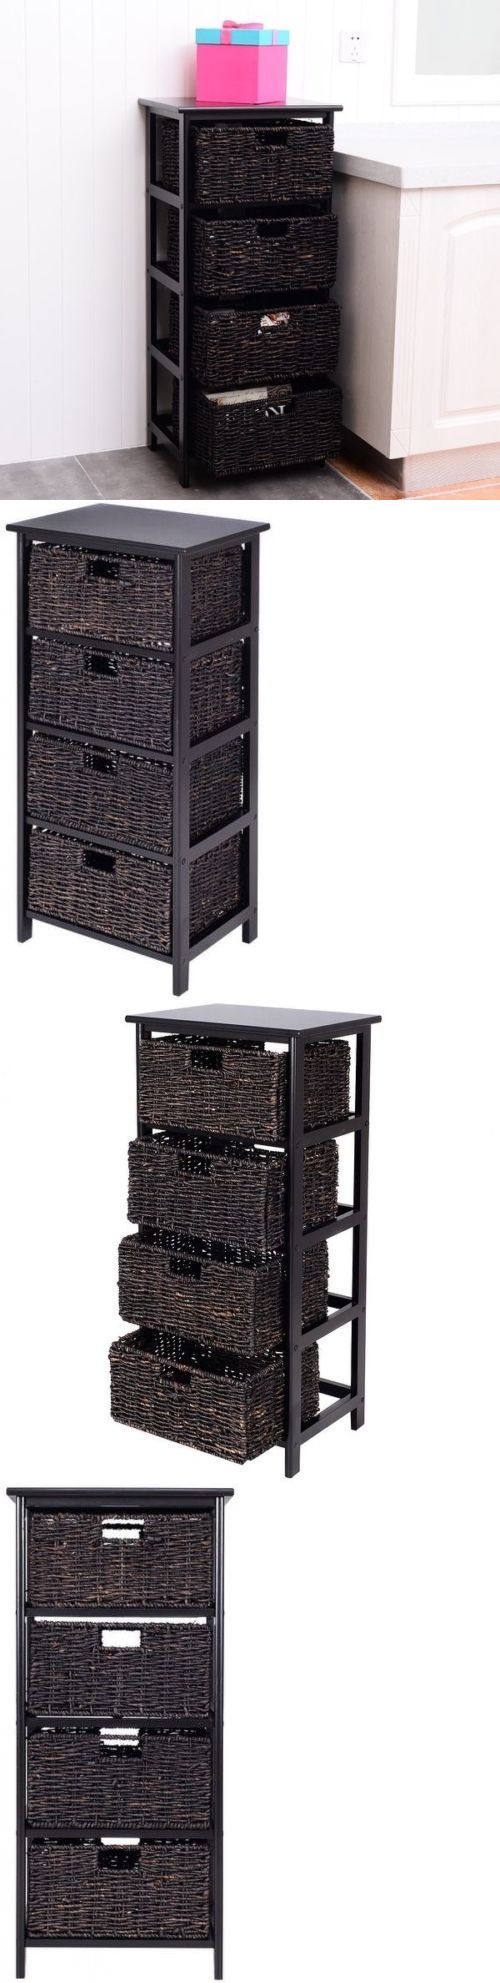 White tilt out clothes storage basket bin bathroom drawer ebay - Storage Bins And Baskets 159898 Office Storage Furniture Wooden End Accent Table Chest Of Drawers